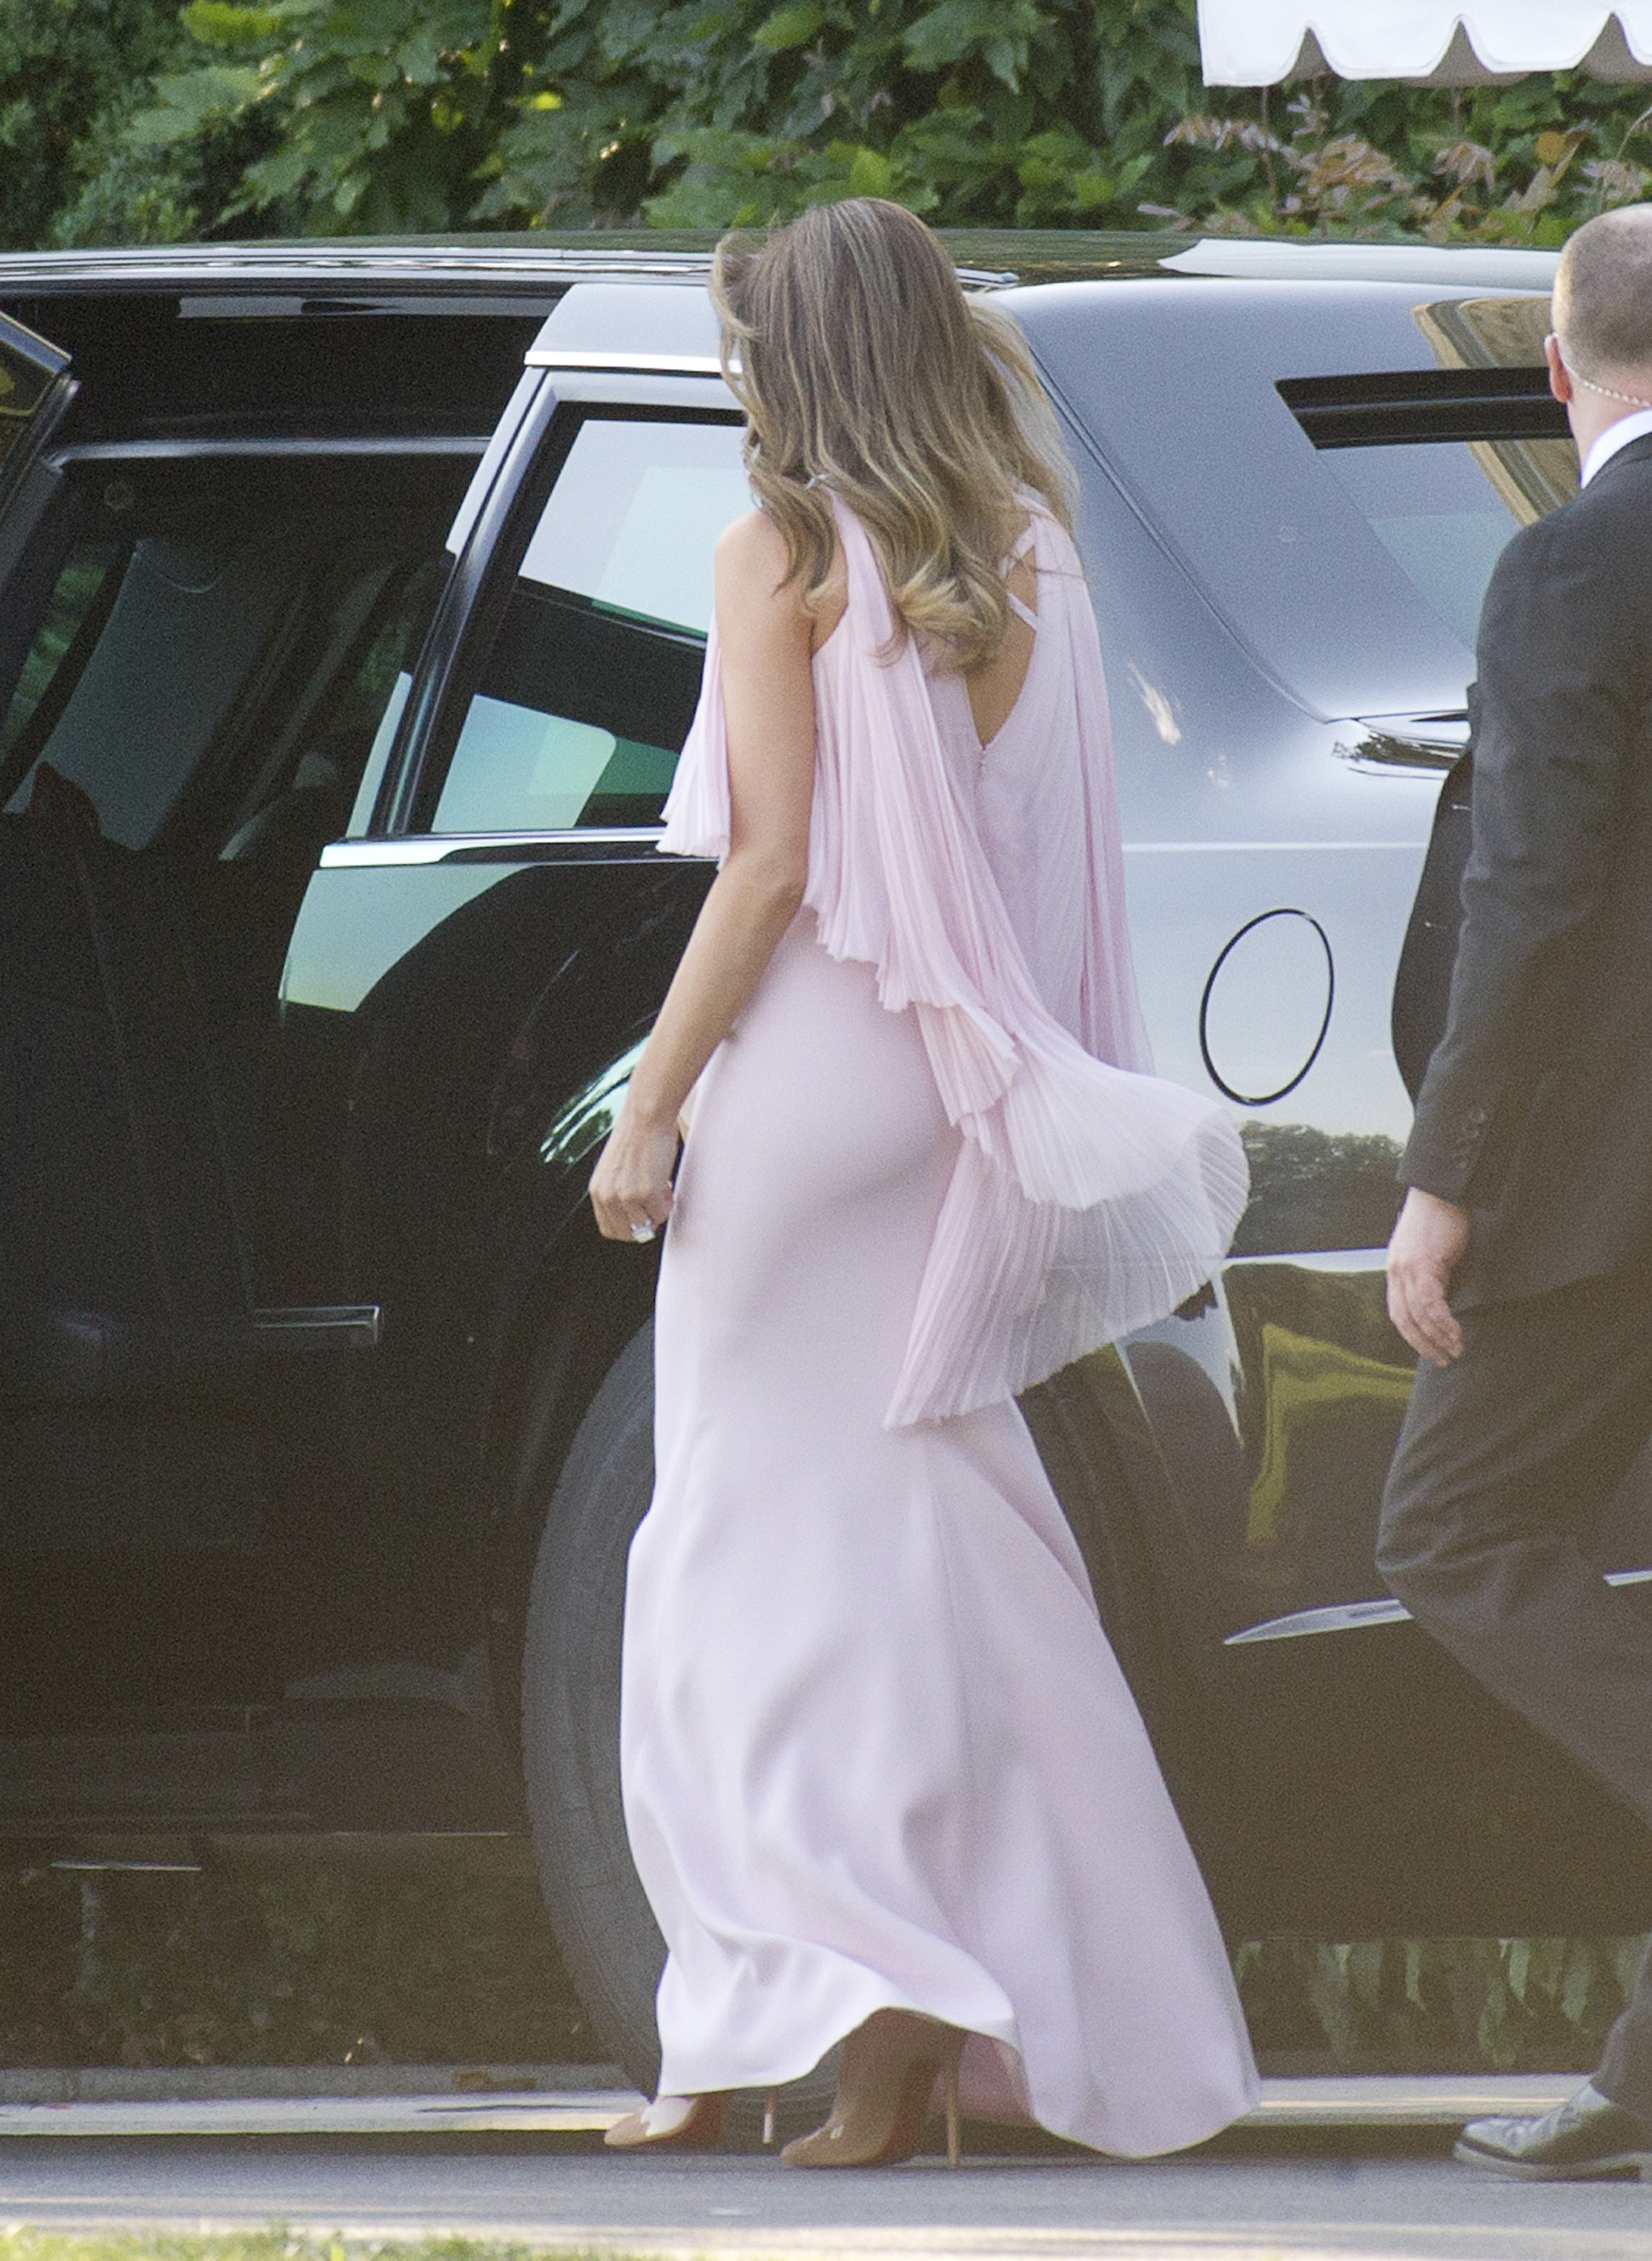 President Donald J. Trump and first lady Melania Trump wearing a J. Mendel chiffon gown with Manolo Blahnik shoes, departs the White House on route to a wedding, June 24, 2017.